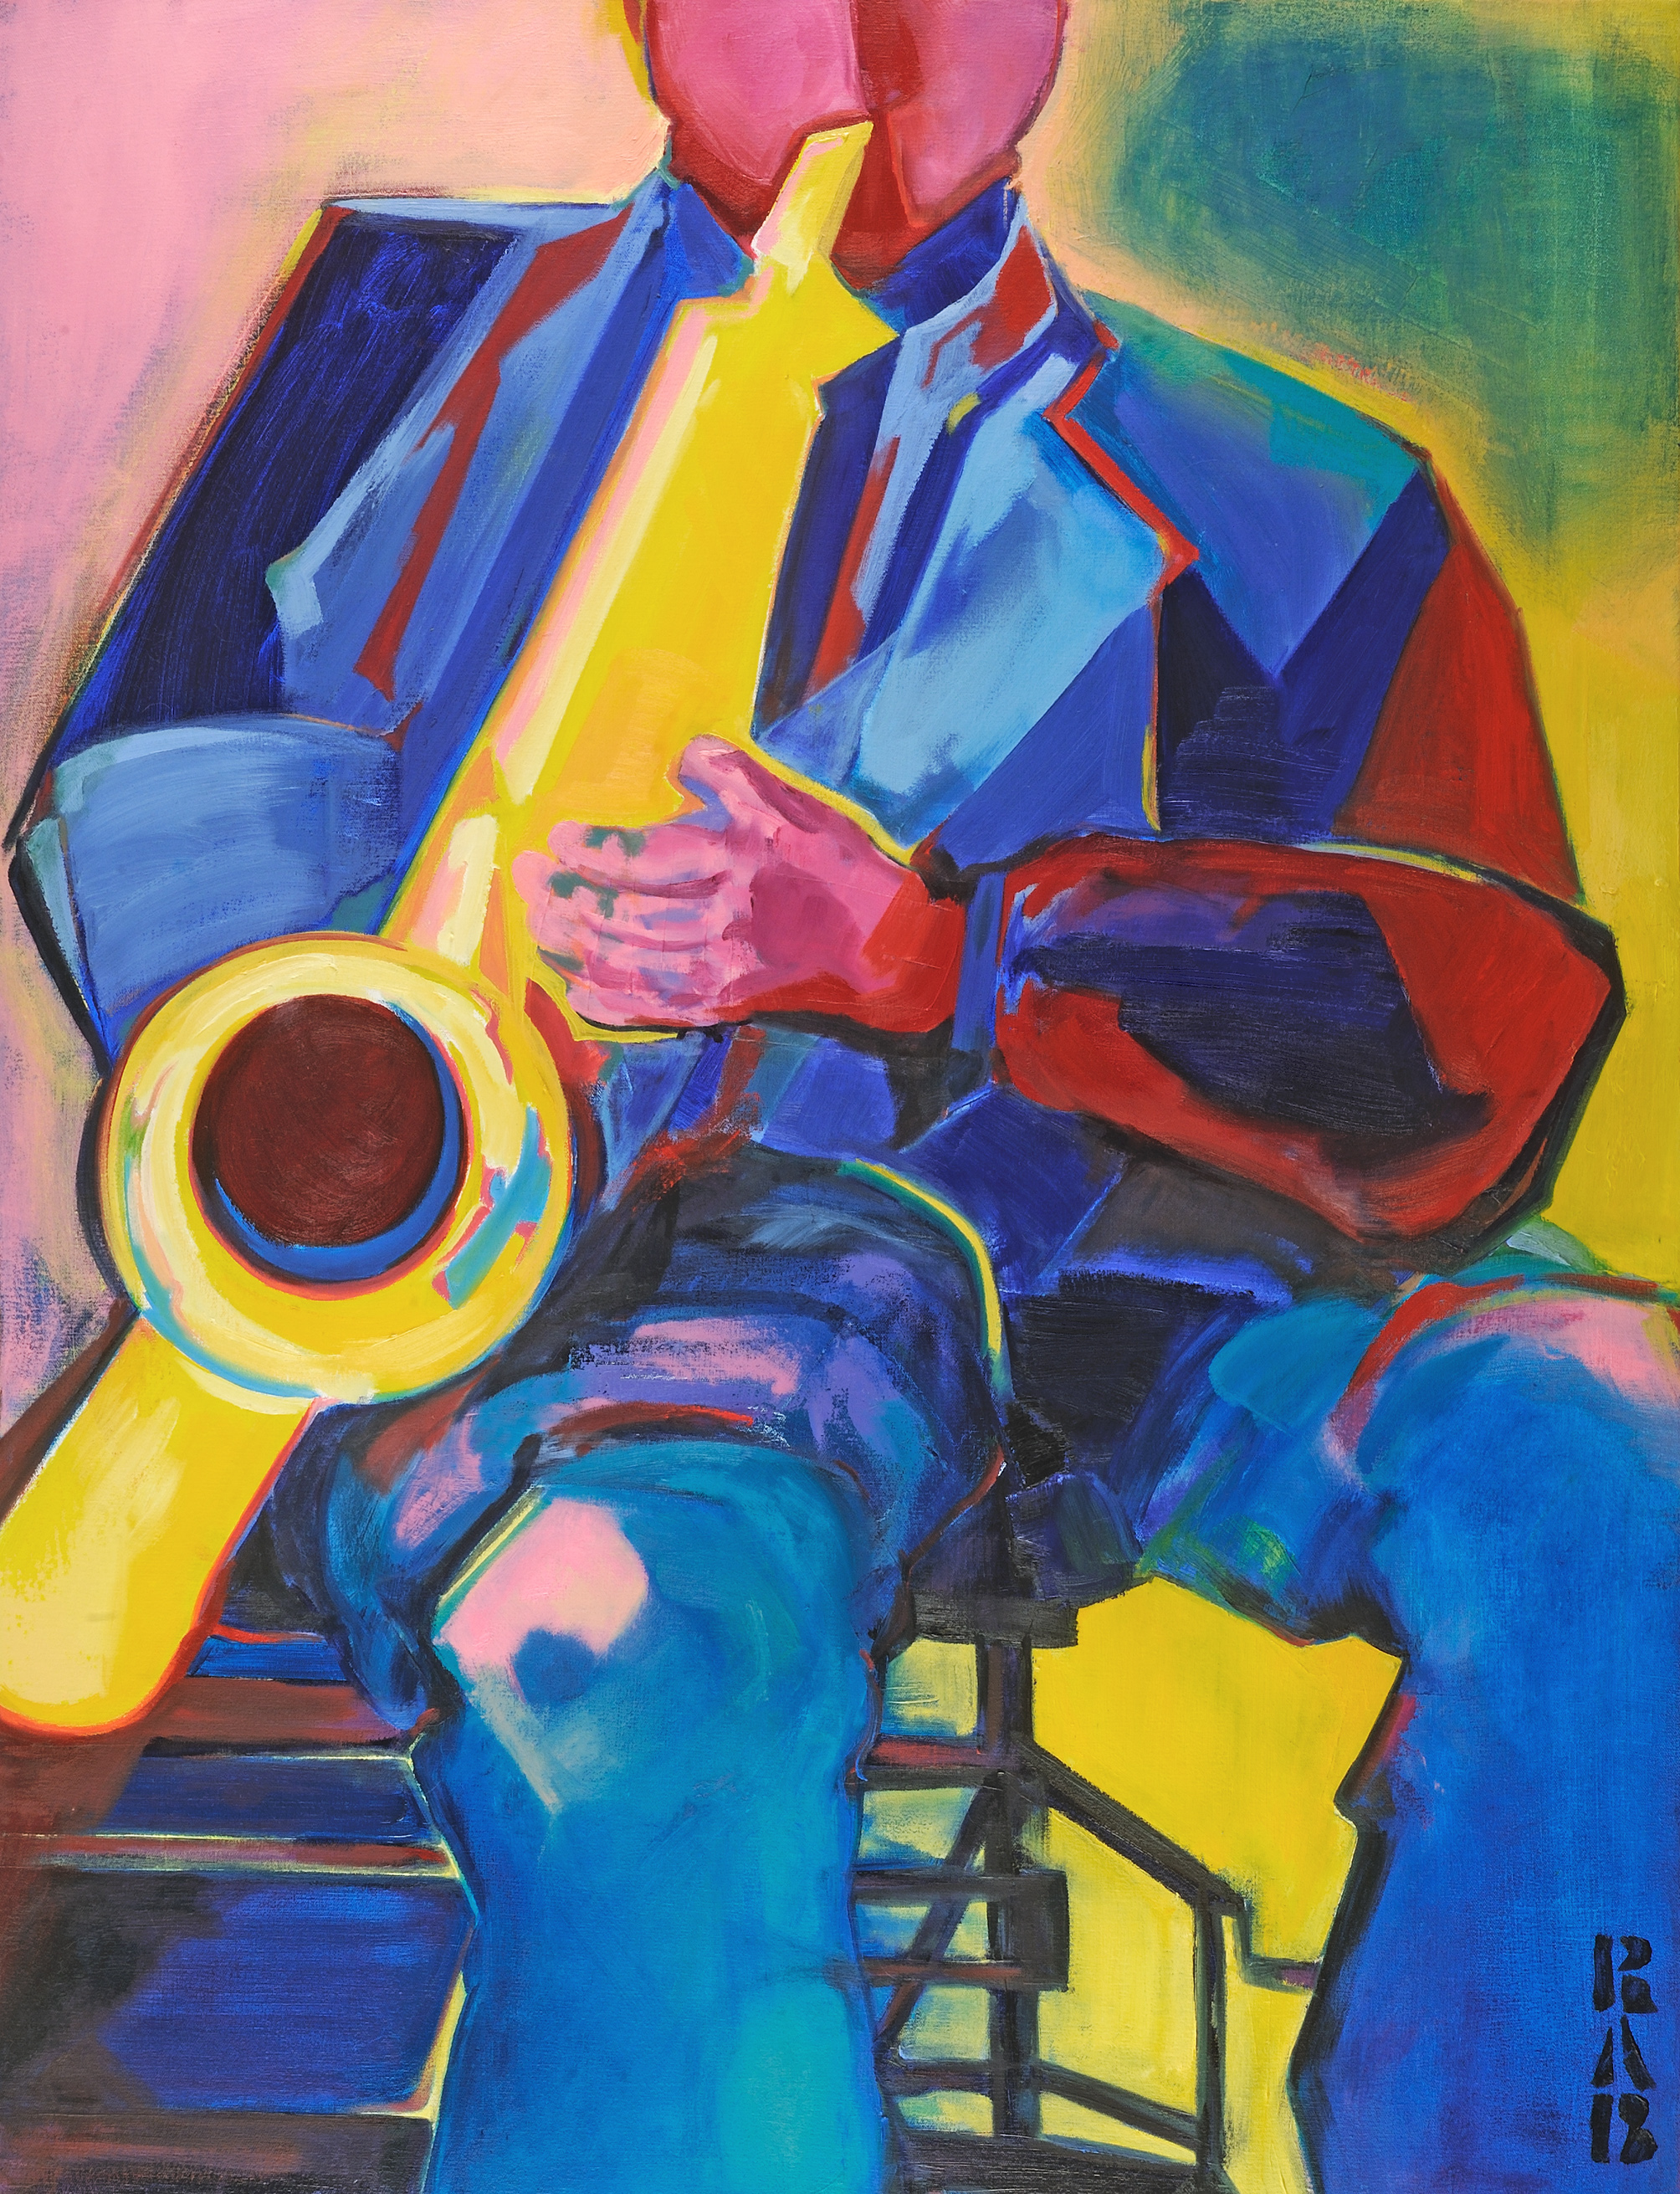 abstractionism, social abstractionist, jazz, music and art, oil painting, contemporary art, blues, expressionism, expressionist painting, rachael bohlander, r.a.b.